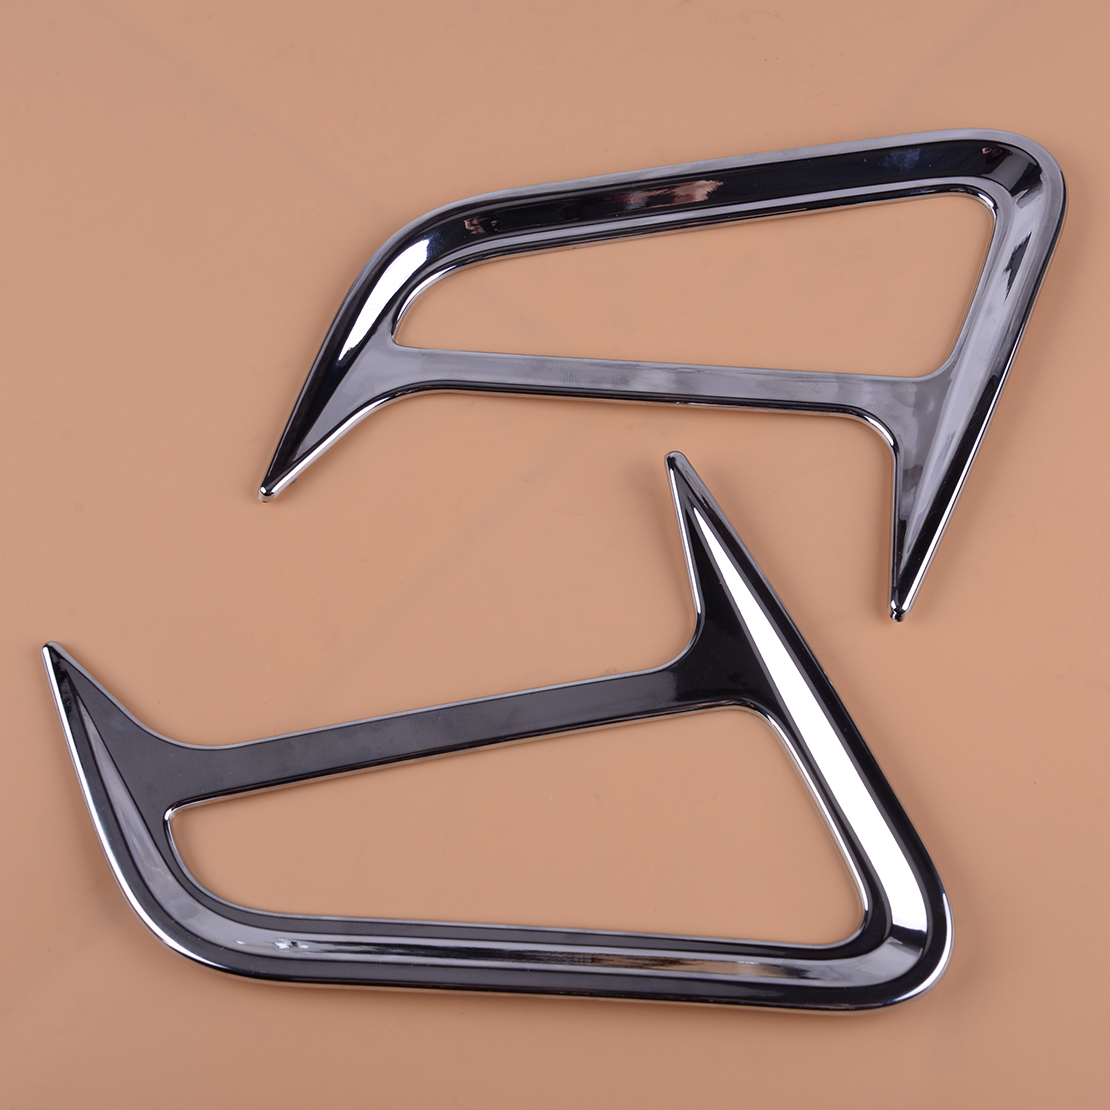 beler Chrome 2PCS Front Side Exterior Turn Signal Light Lamp Cover Trim Decoration Protector Fit for <font><b>Hyundai</b></font> Kona 2017 2018 <font><b>2019</b></font> image